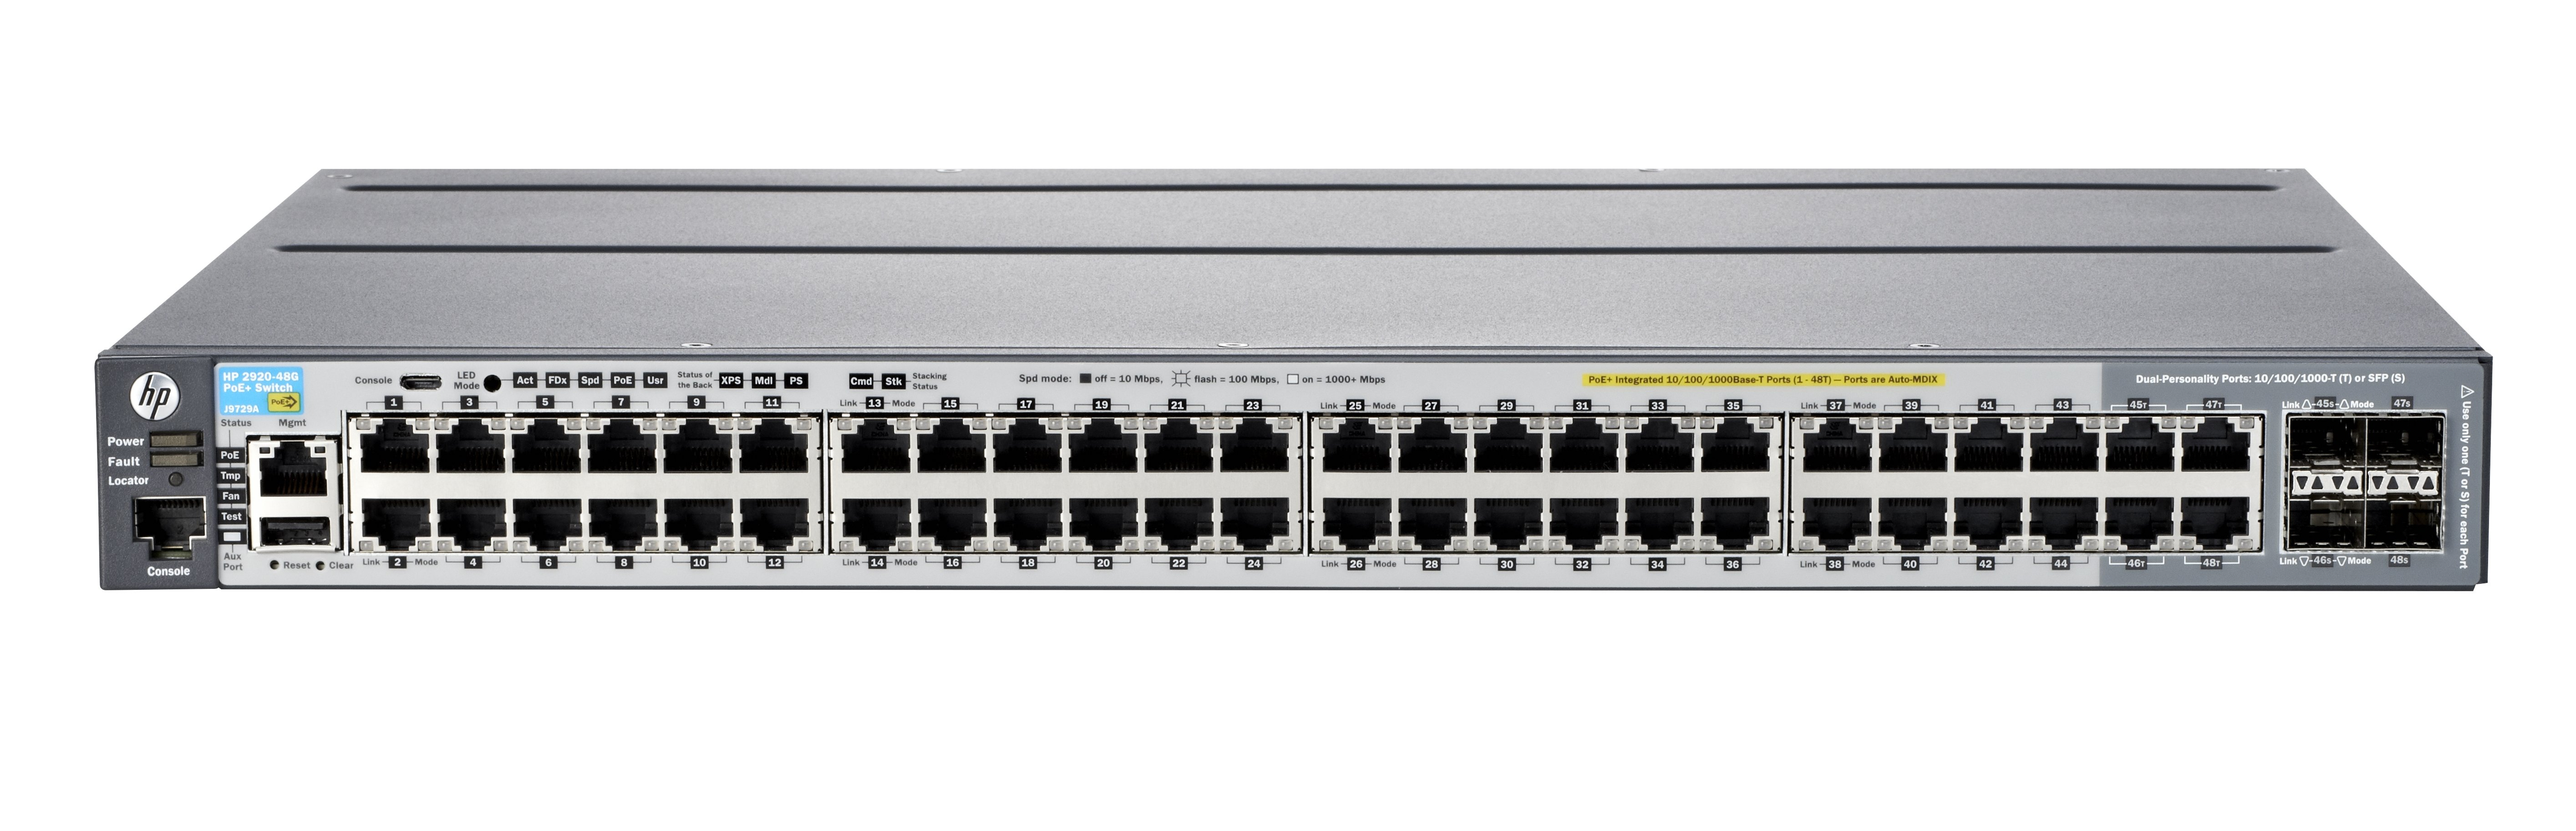 Aruba 2920 48g Poe 740 W Switch 48 J9836a 315213 Duplex Panel This Controller Includes Circuit Breakers And Cat7 Flexible Scalable Access Layer Switches